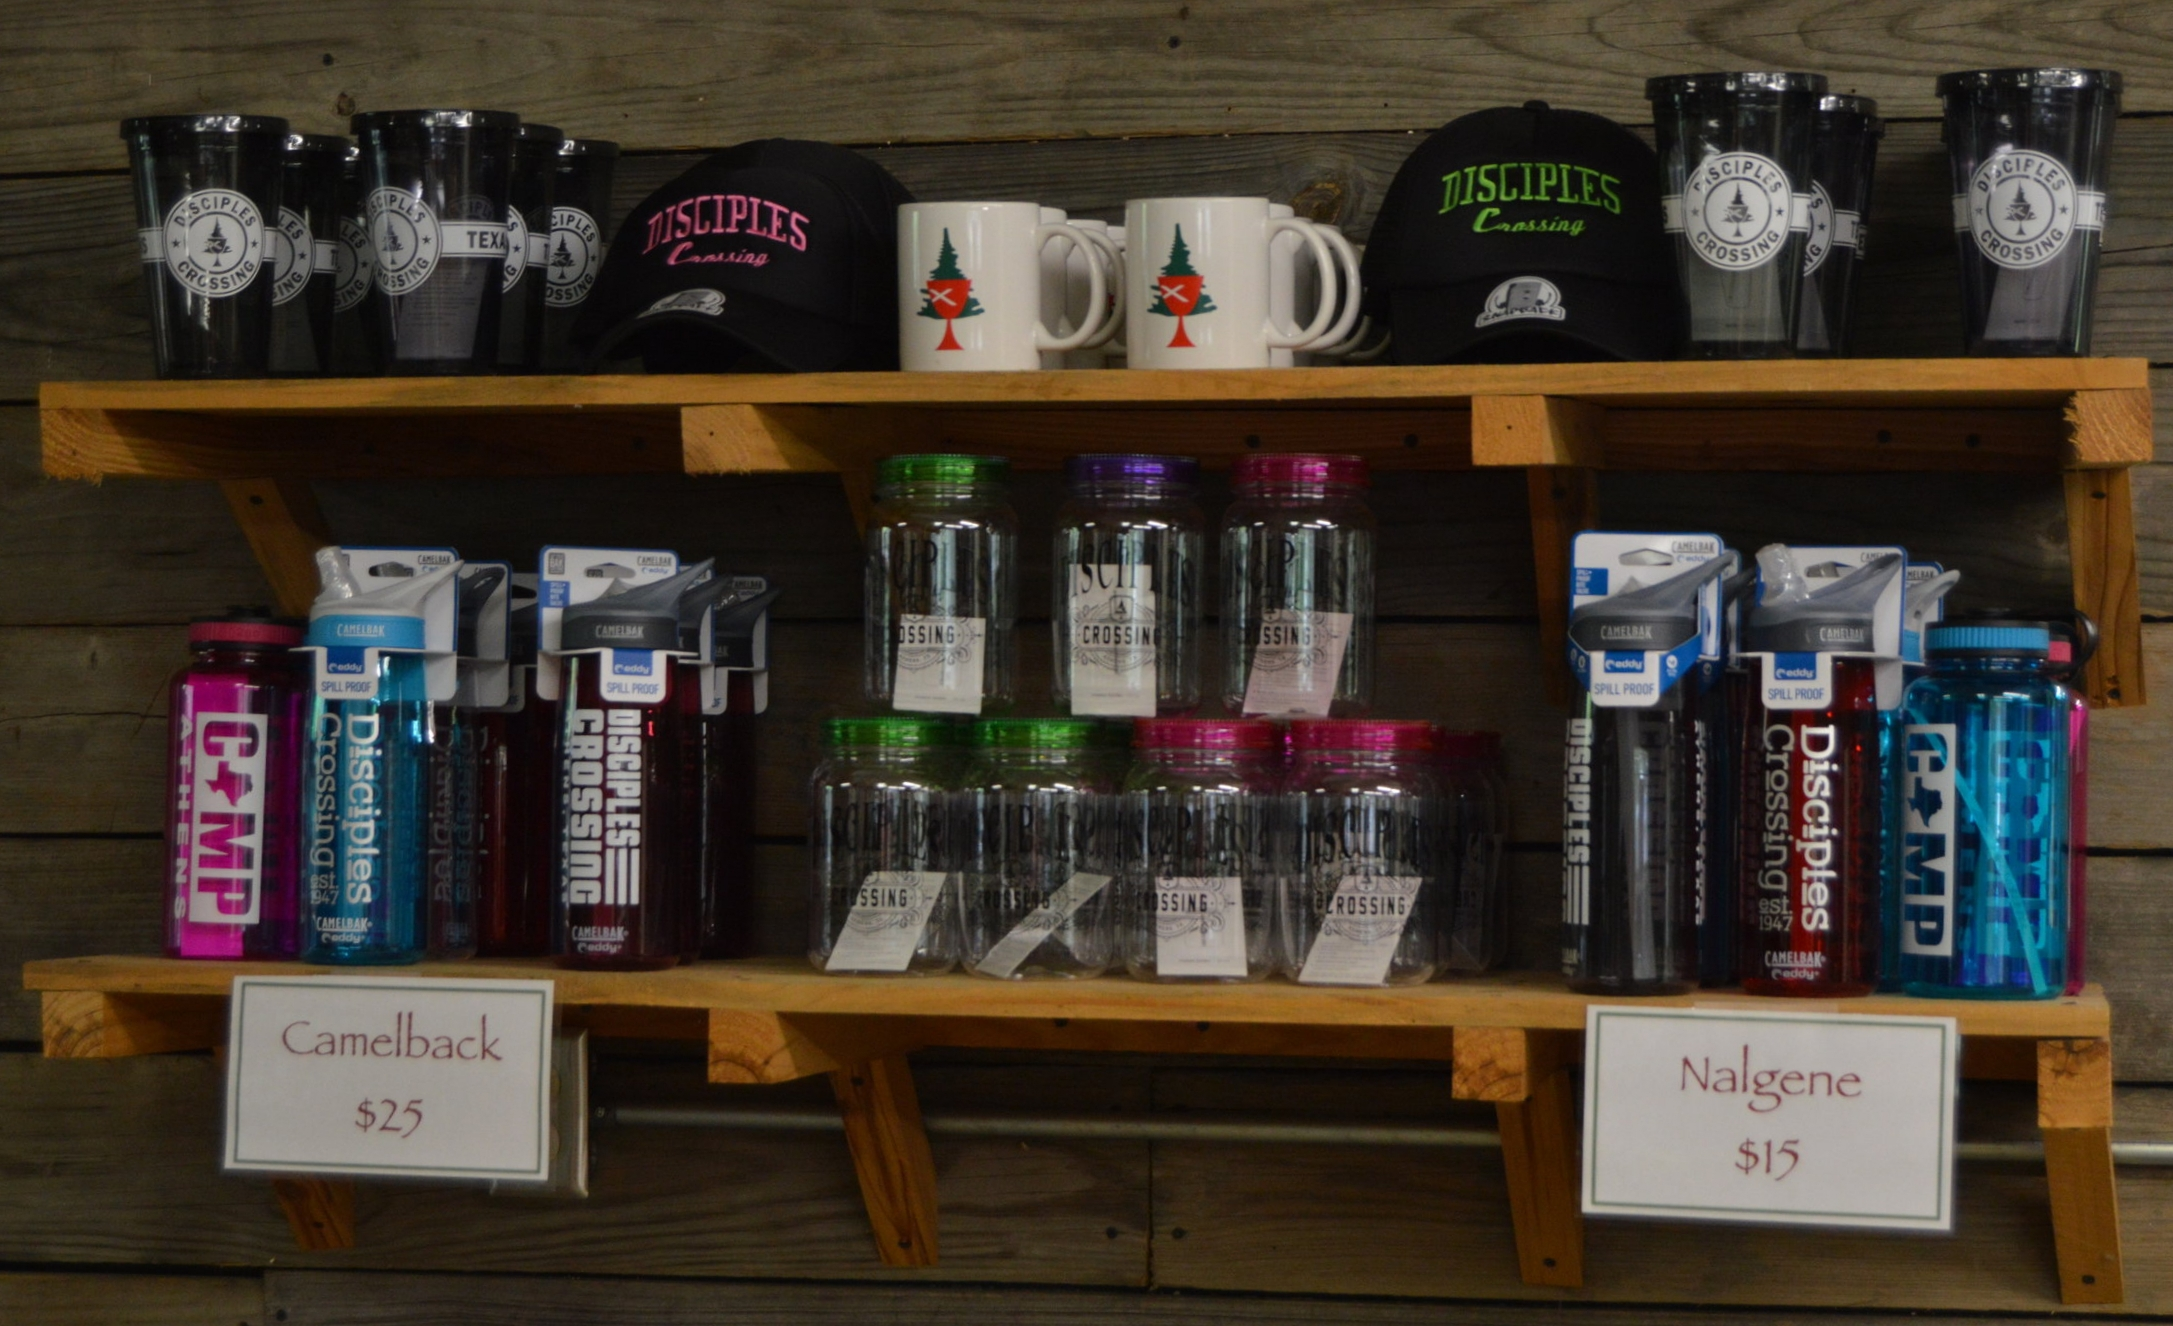 Camelback: $25  Nalgene: $15  Small Coffee Mug: $3  Tumblers:  Mason Jars: $10  Black Hats: $20